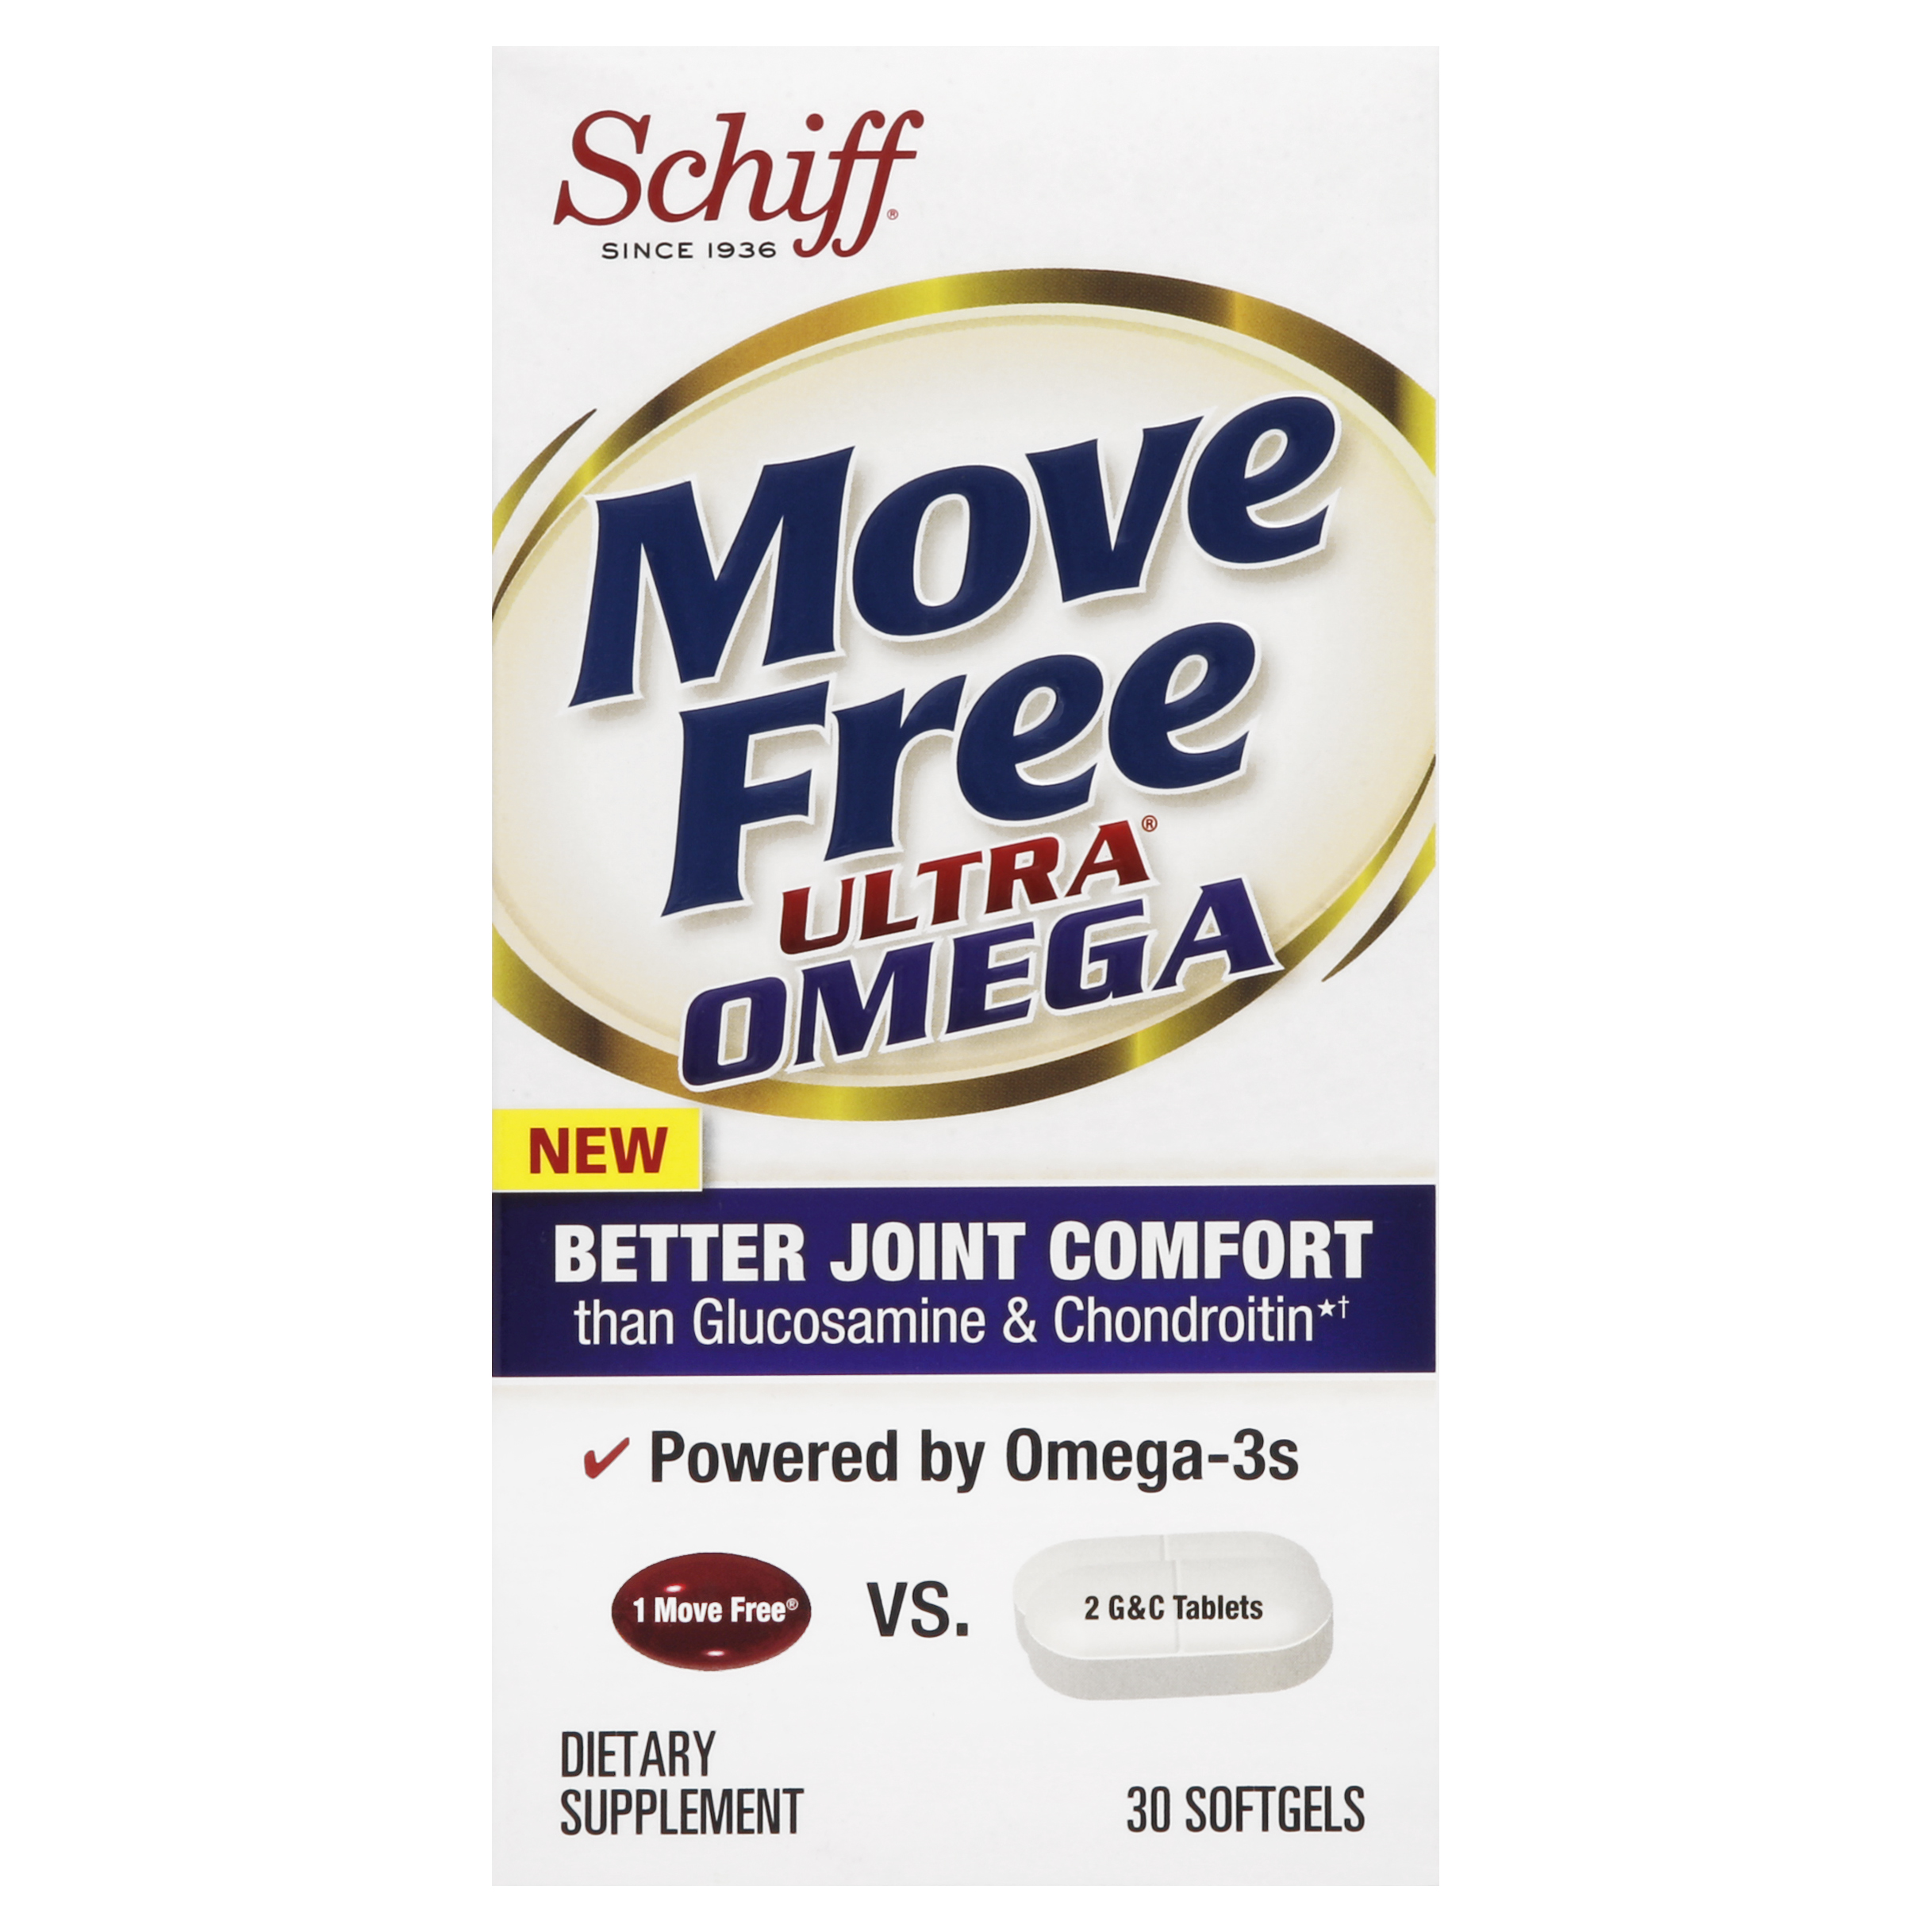 Move Free Ultra Omega Omega 3 Krill Oil, Hyaluronic Acid and Astaxanthin Joint Supplement, 30 Count